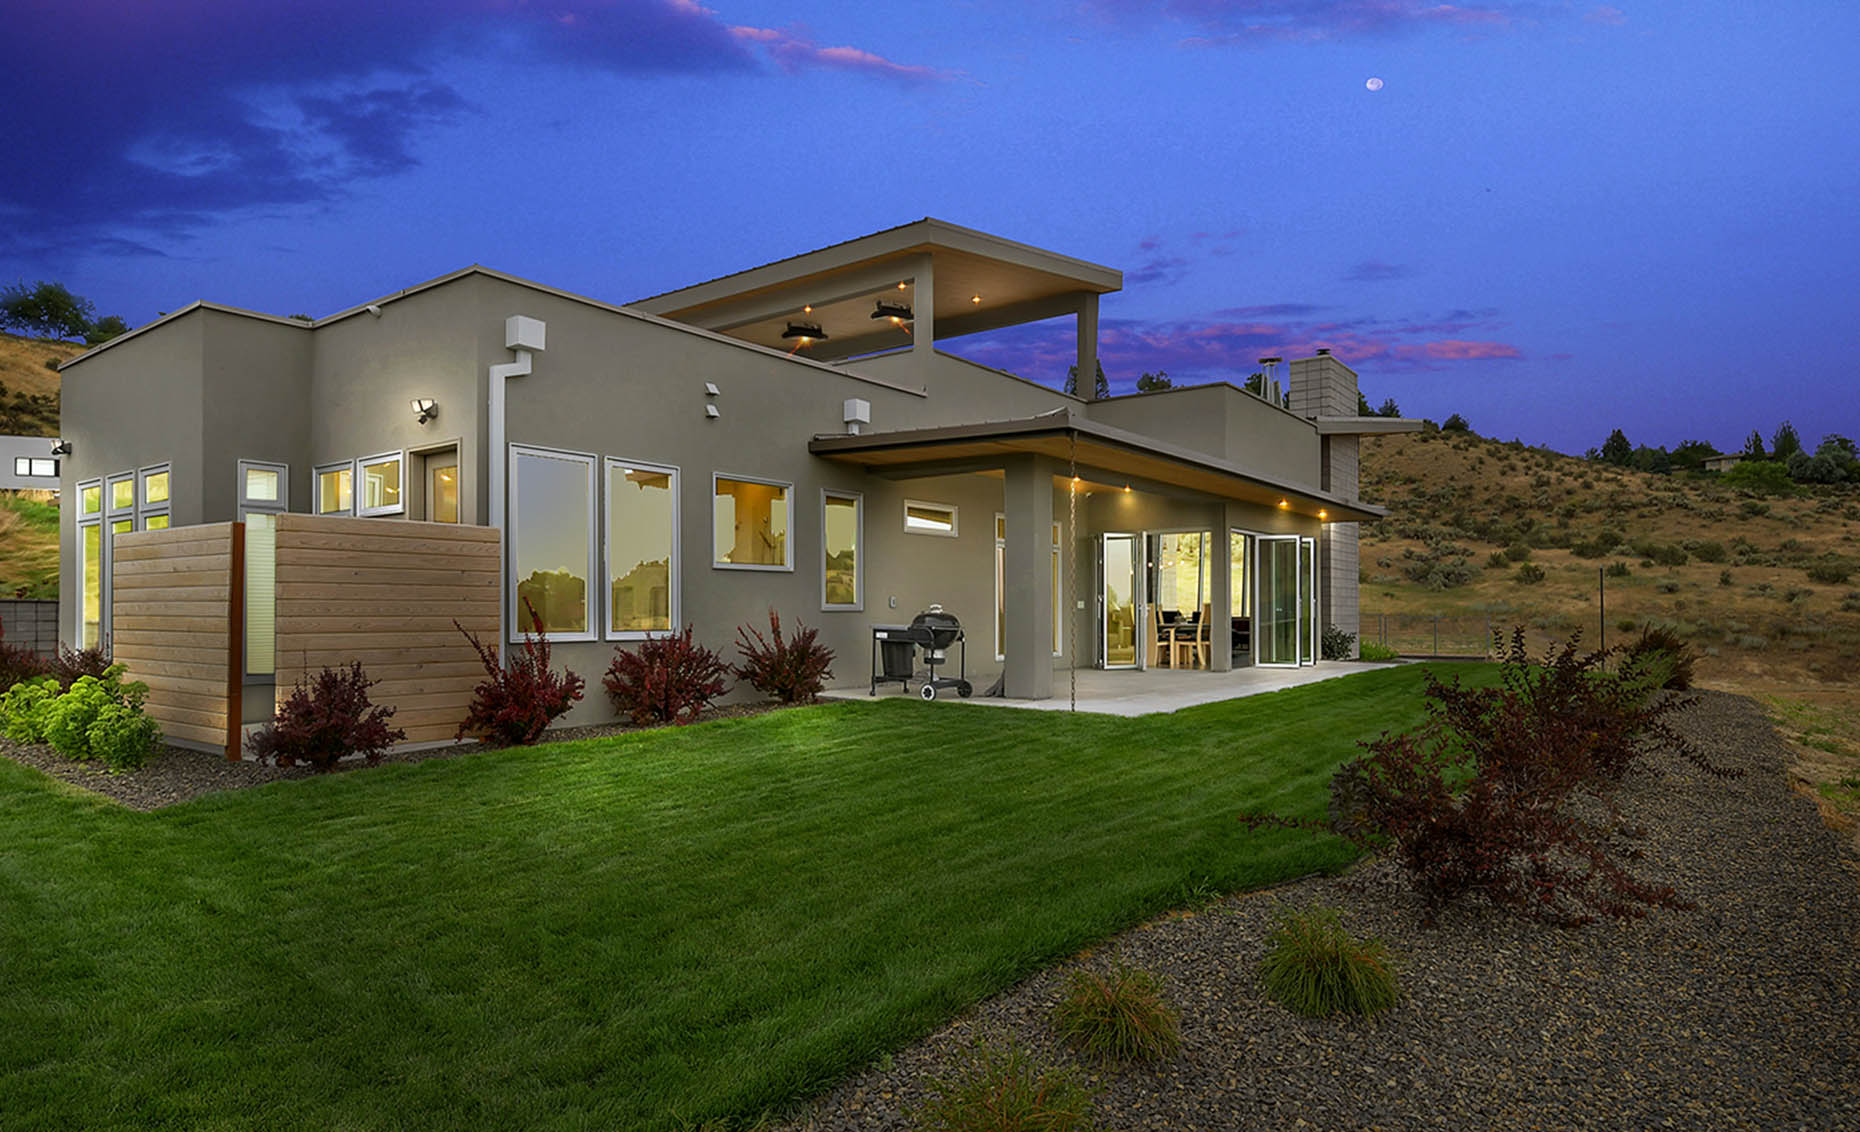 The Nature View Custom Home Backyard Exterior at Dusk